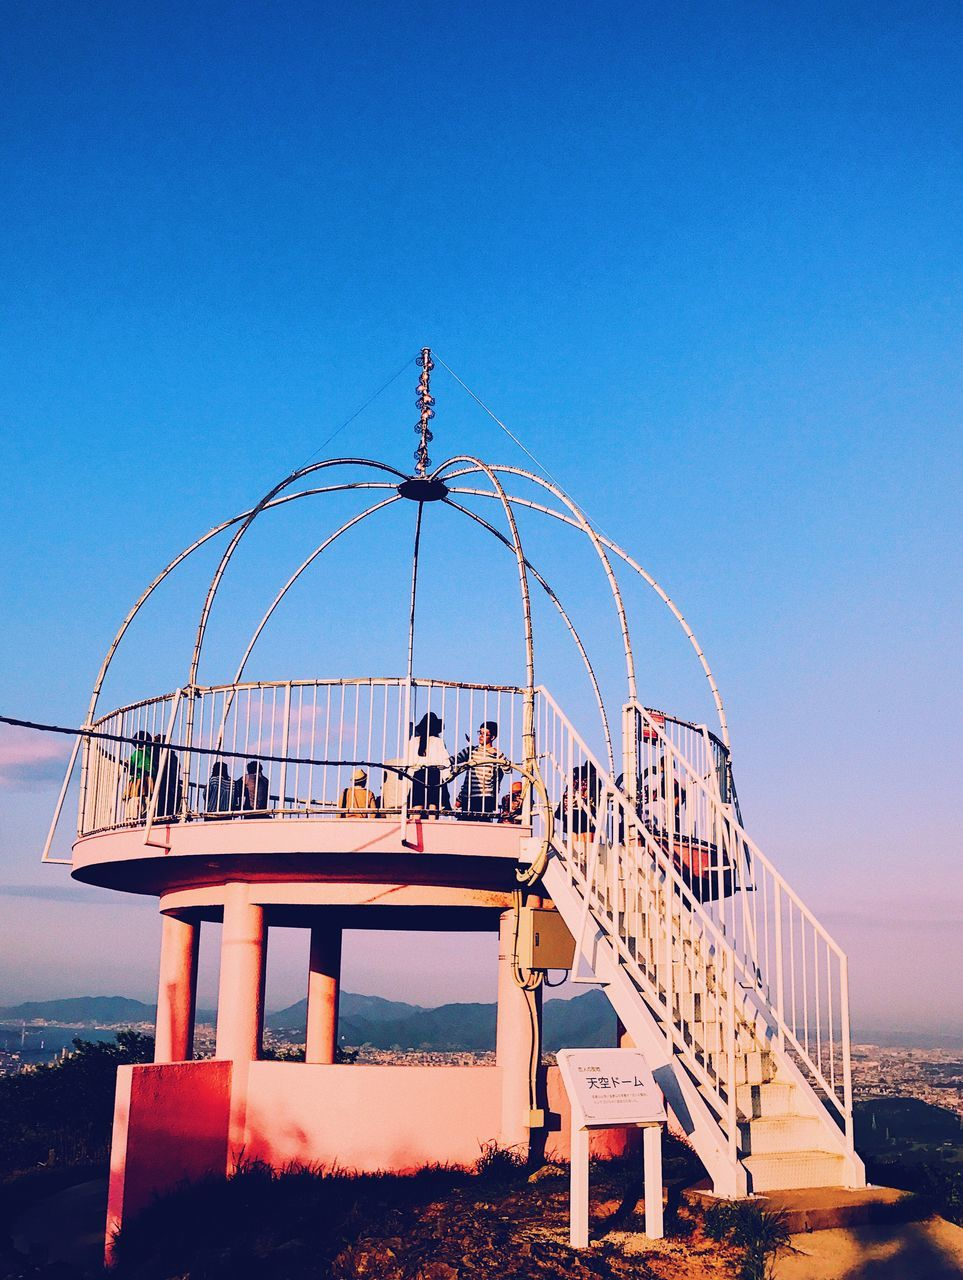 People On Lookout Tower Against Clear Blue Sky